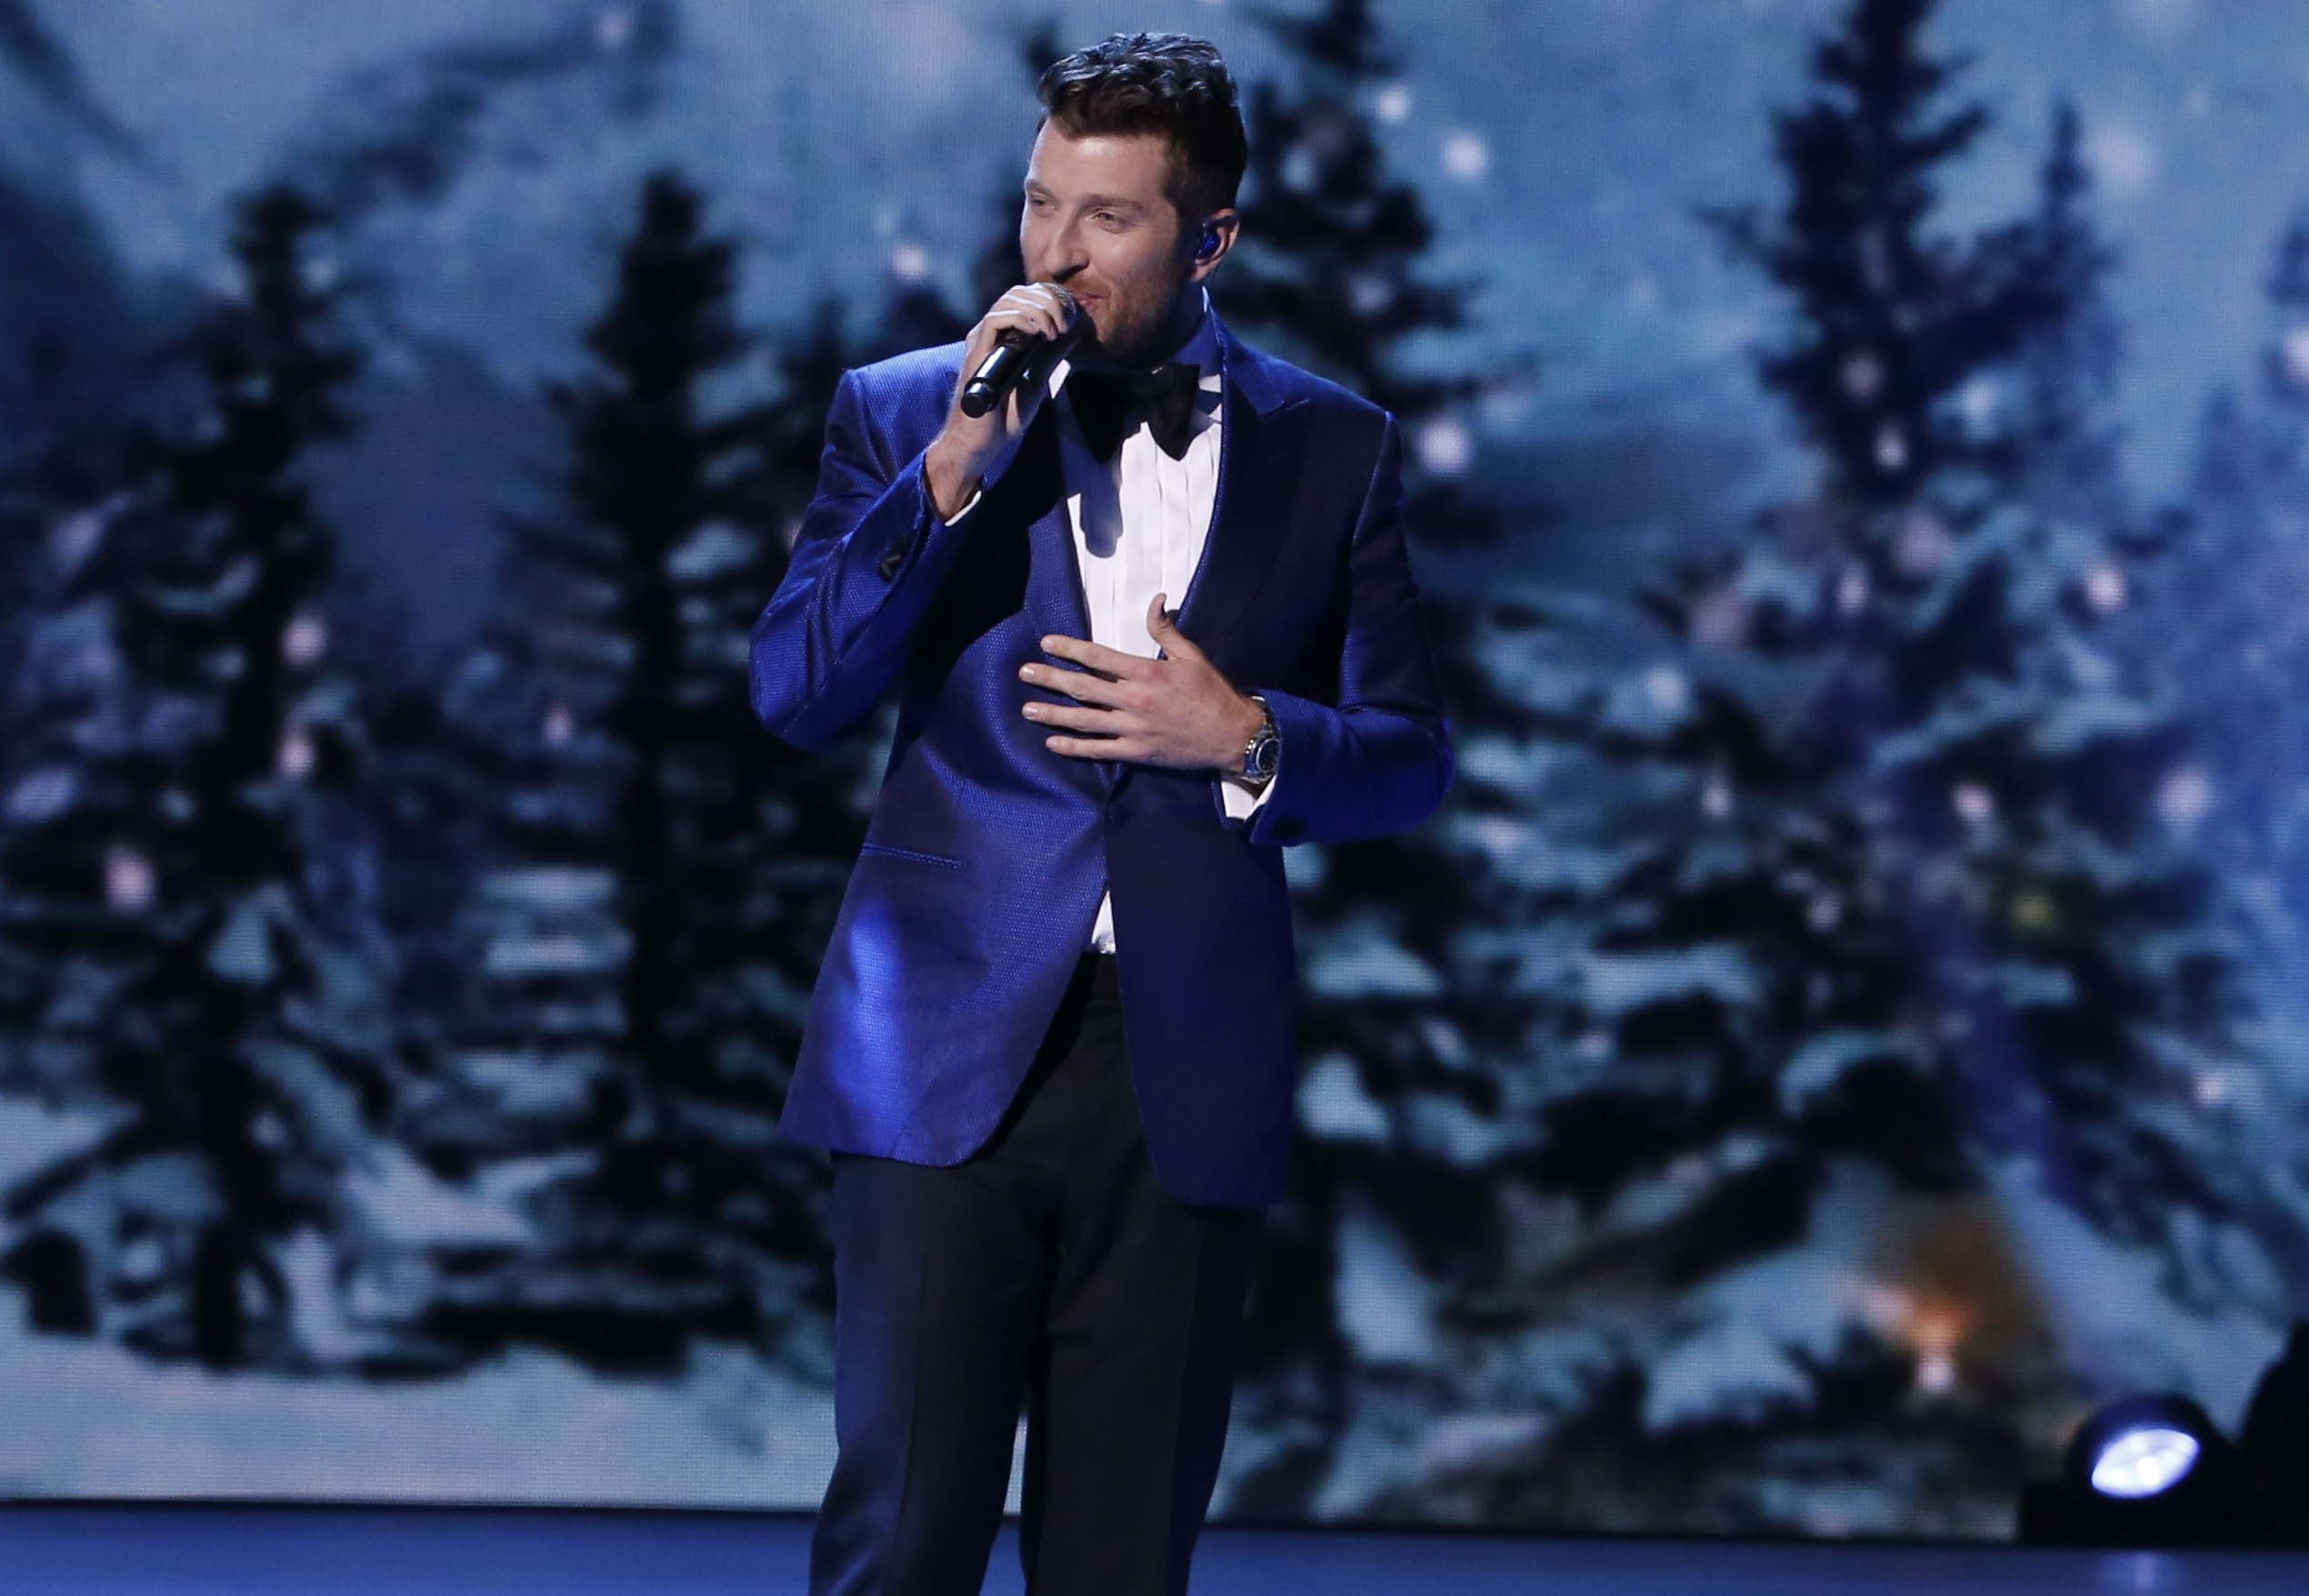 have yourself a merry little christmas with help from brett eldredge sounds like nashville